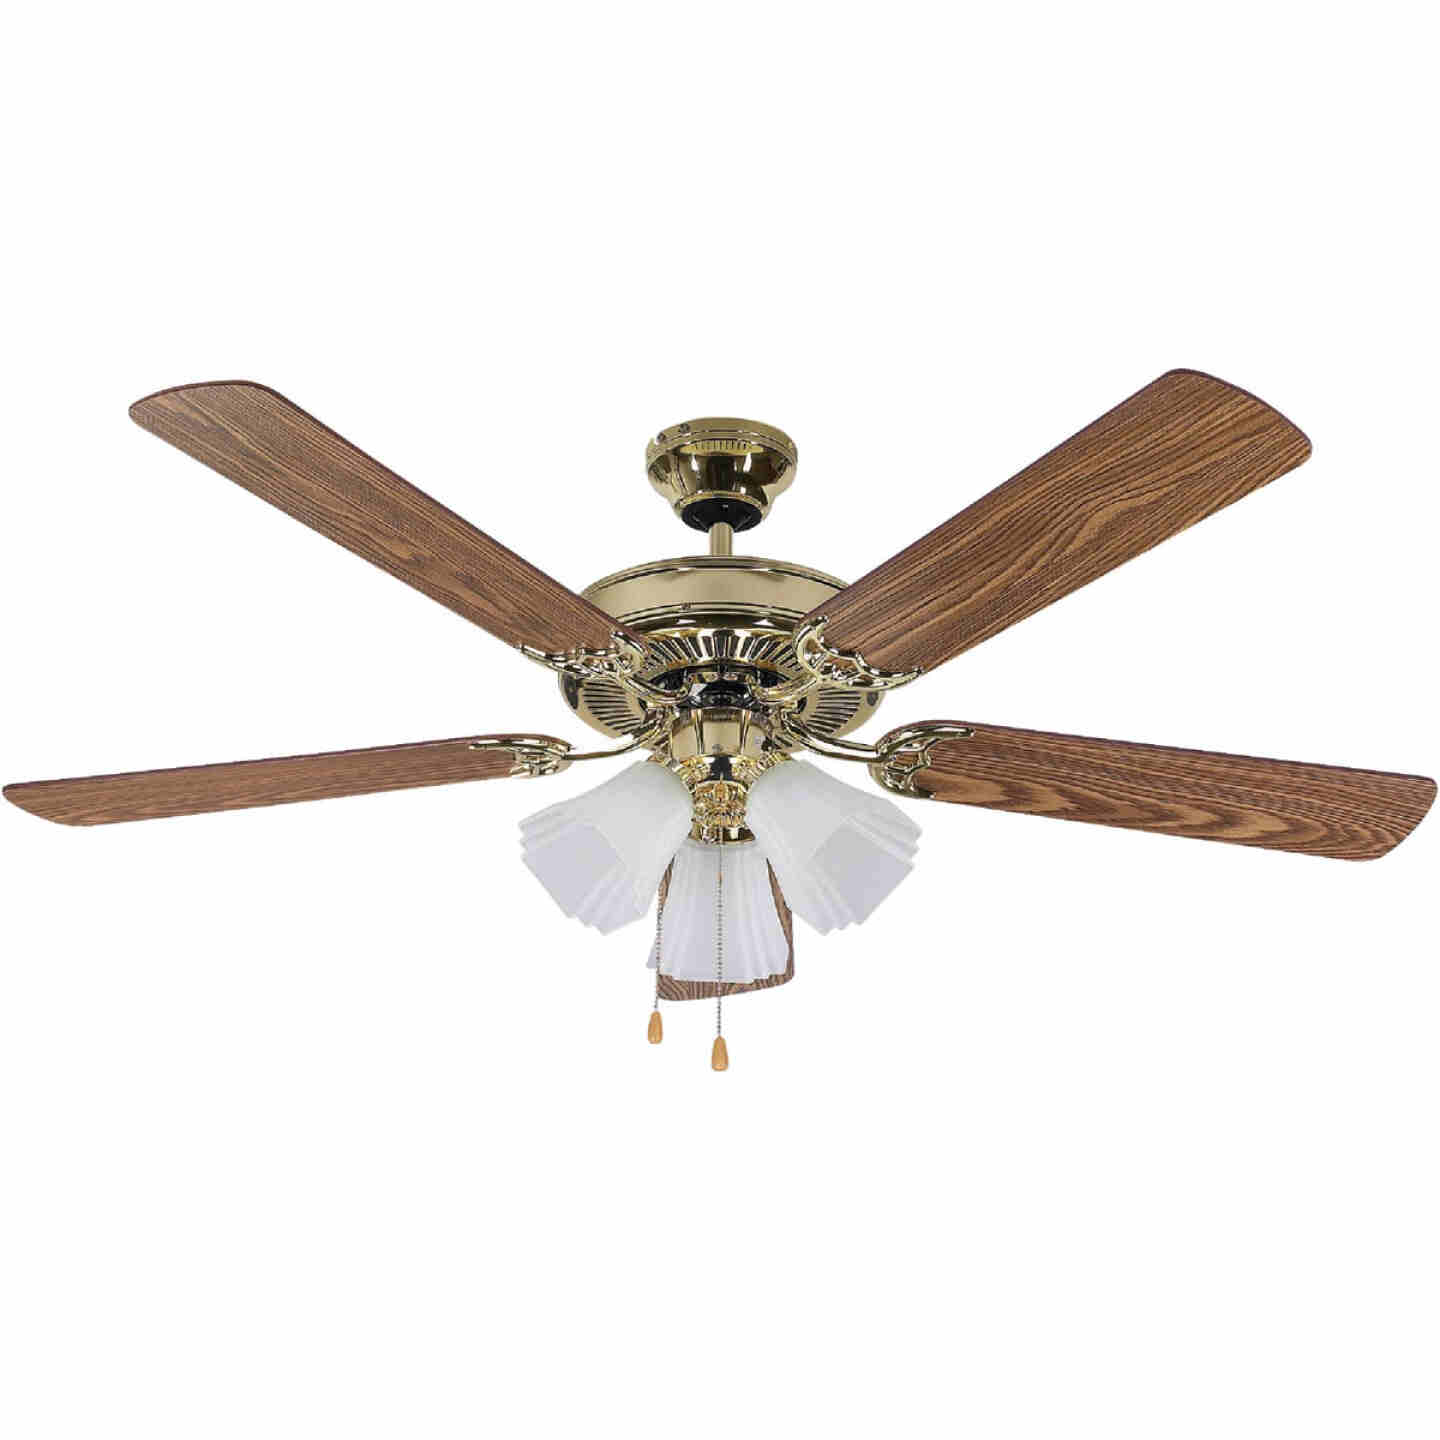 Home Impressions Sherwood 52 In. Polished Brass Ceiling Fan with Light Kit Image 1